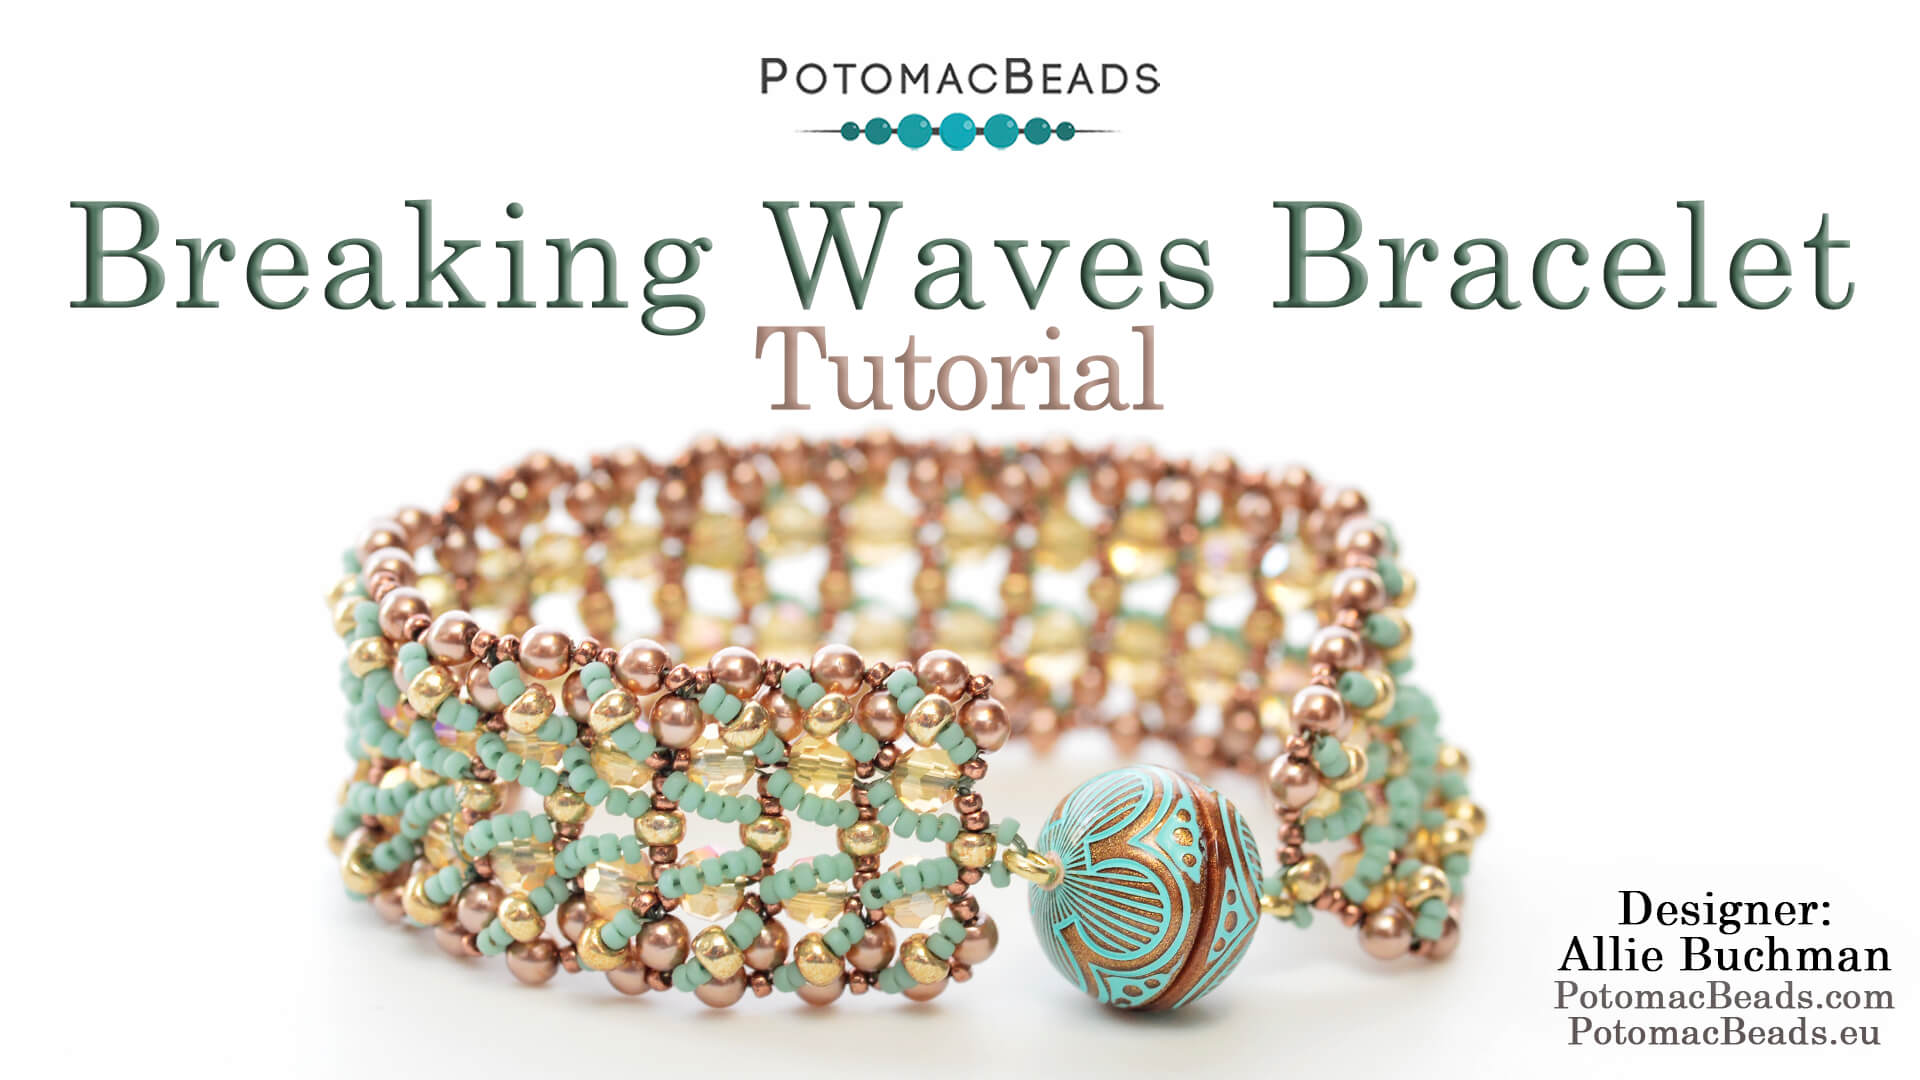 How to Bead Jewelry / Videos Sorted by Beads / Pearl Videos (Czech, Freshwater, Potomac Pearls) / Breaking Waves Bracelet Tutorial